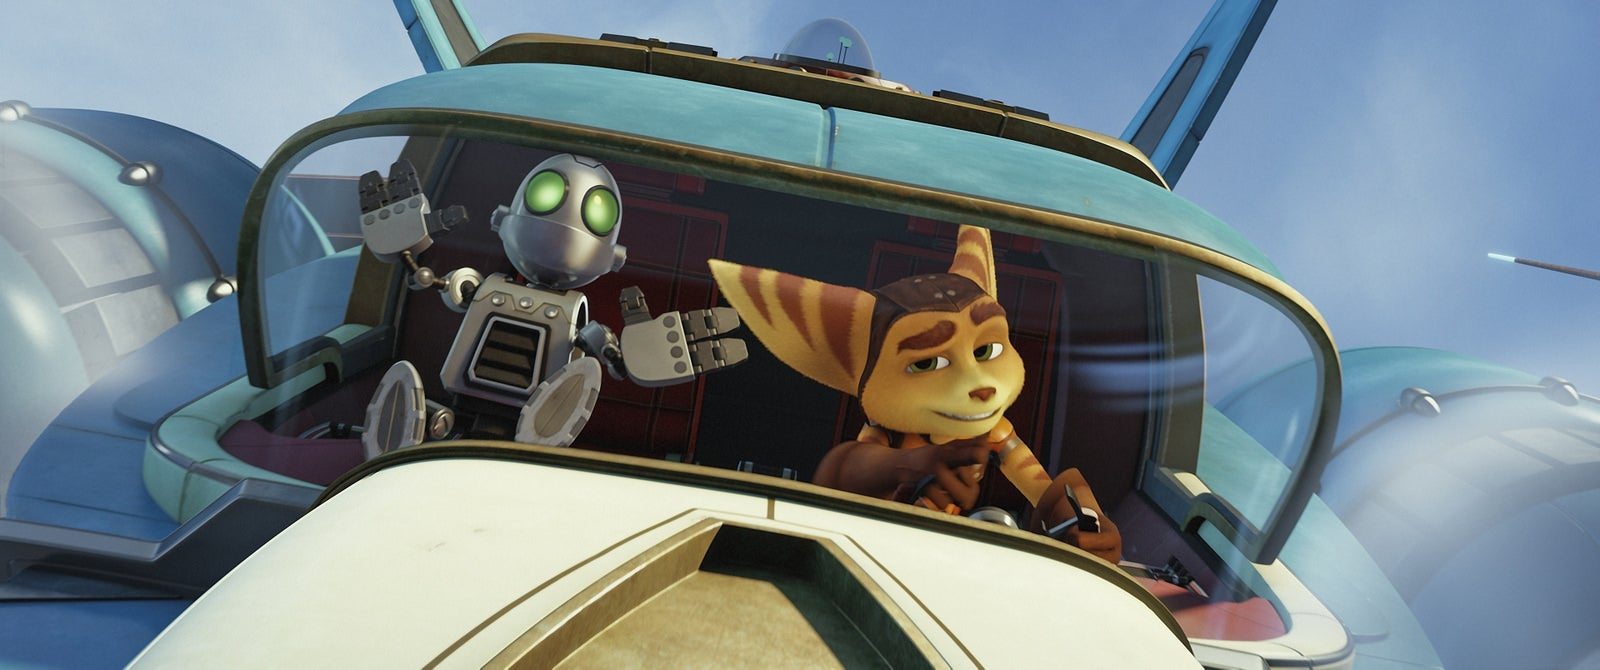 The Ratchet & Clank Movie Is A 90 Minute Cutscene Looking For A Game